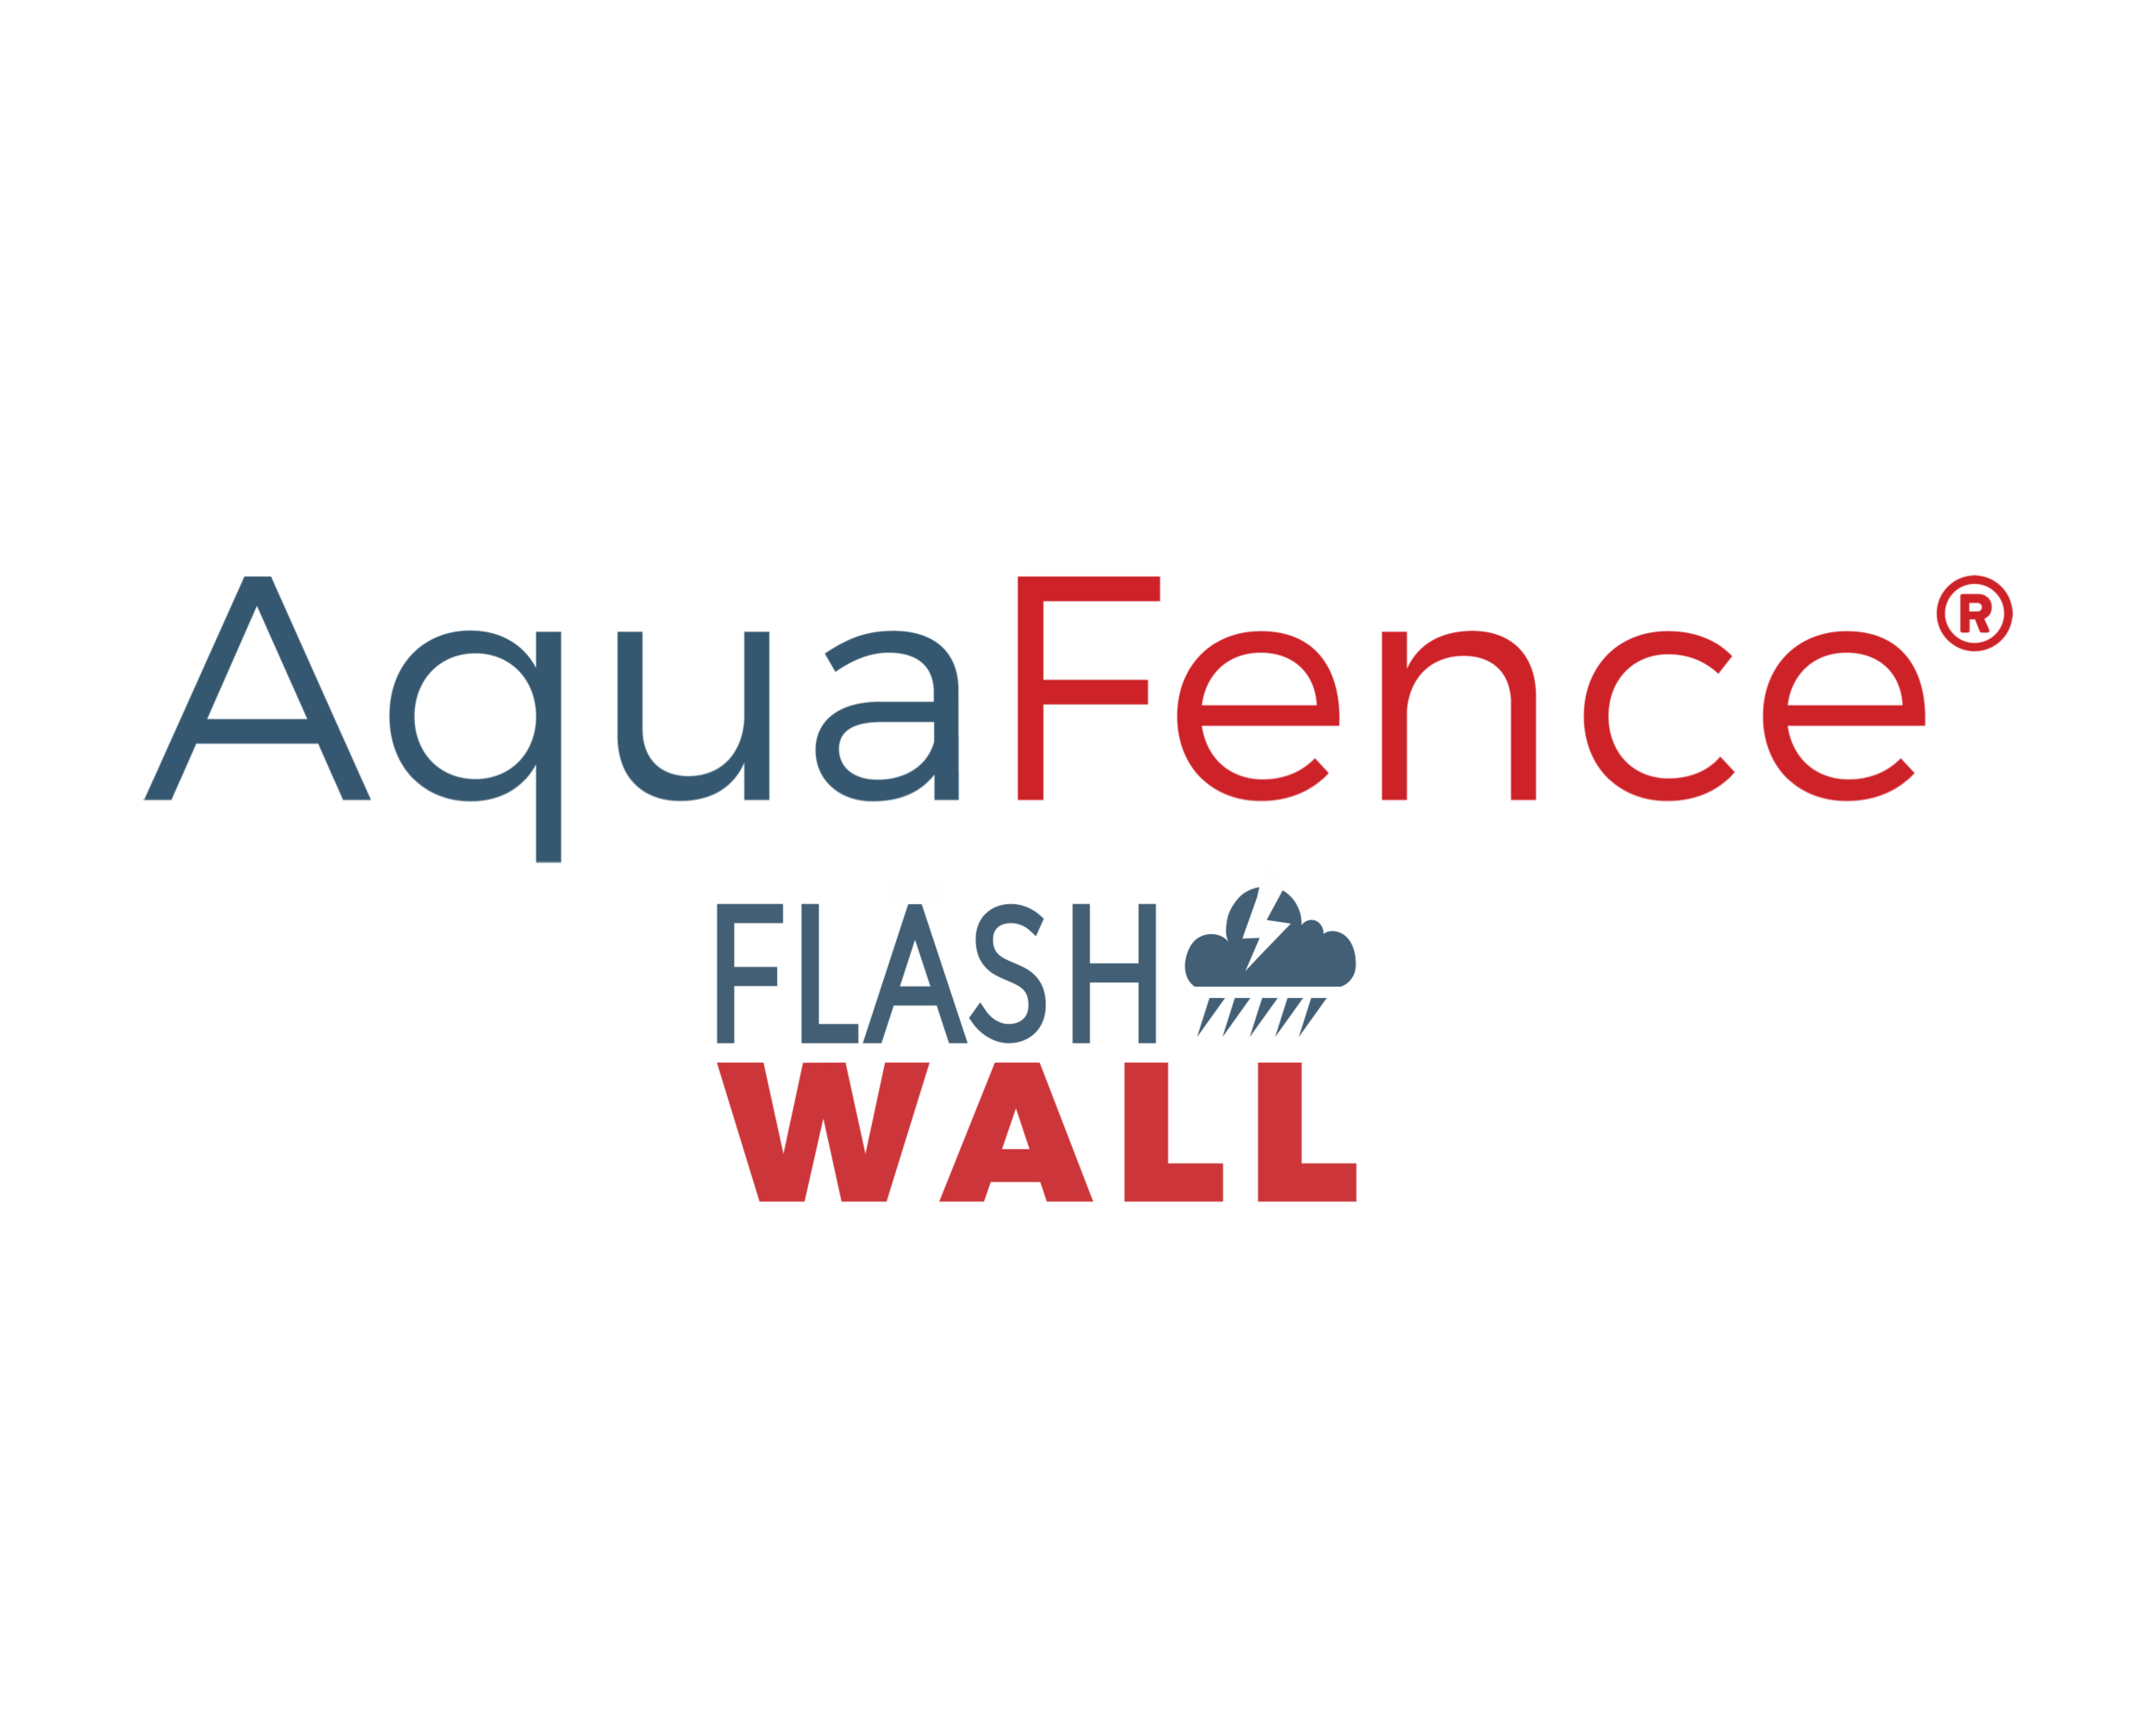 AquaFence FlashWall new-kopi.png